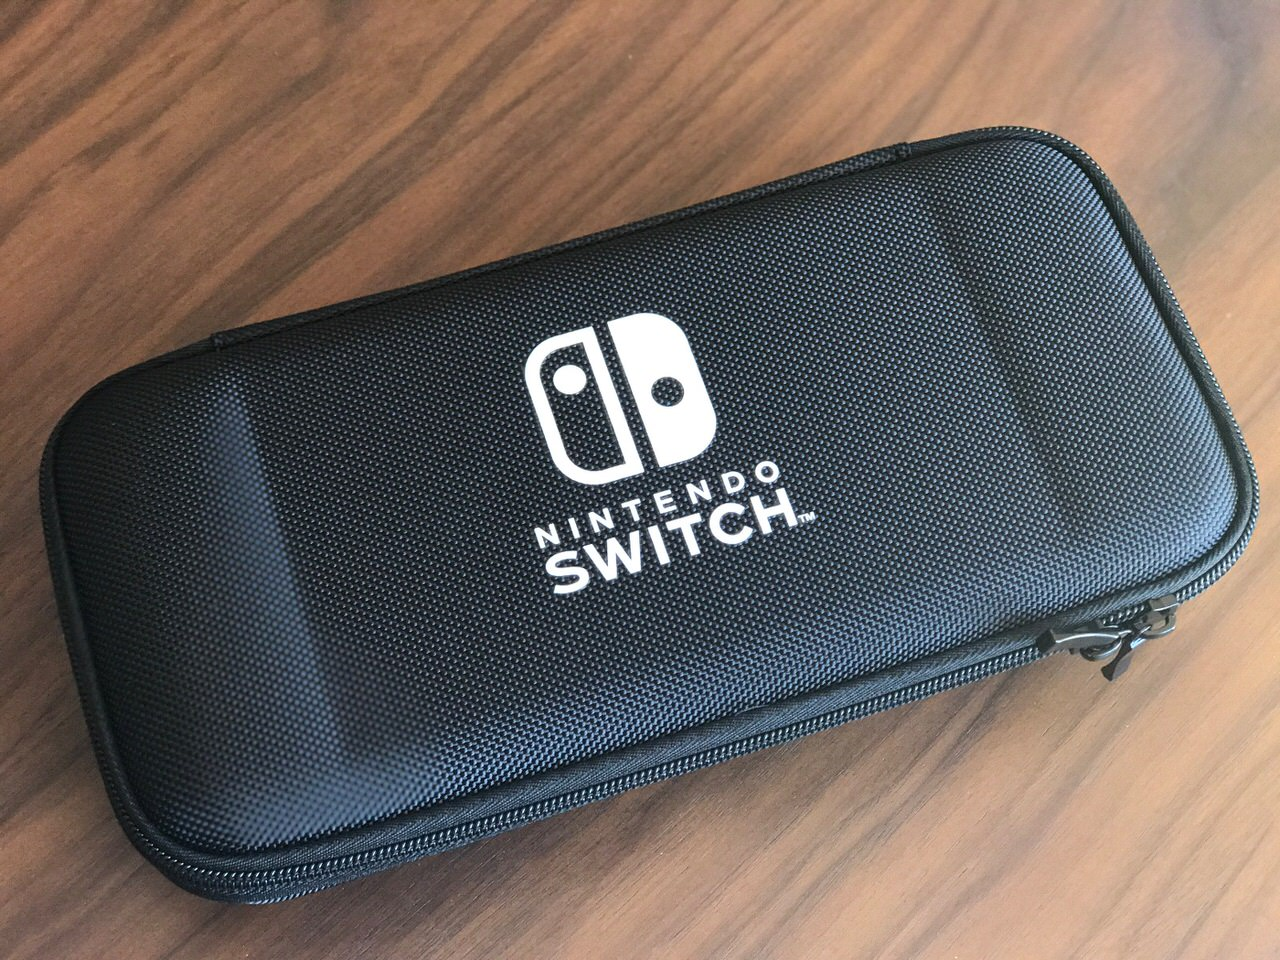 Nintendo switch setup 6796